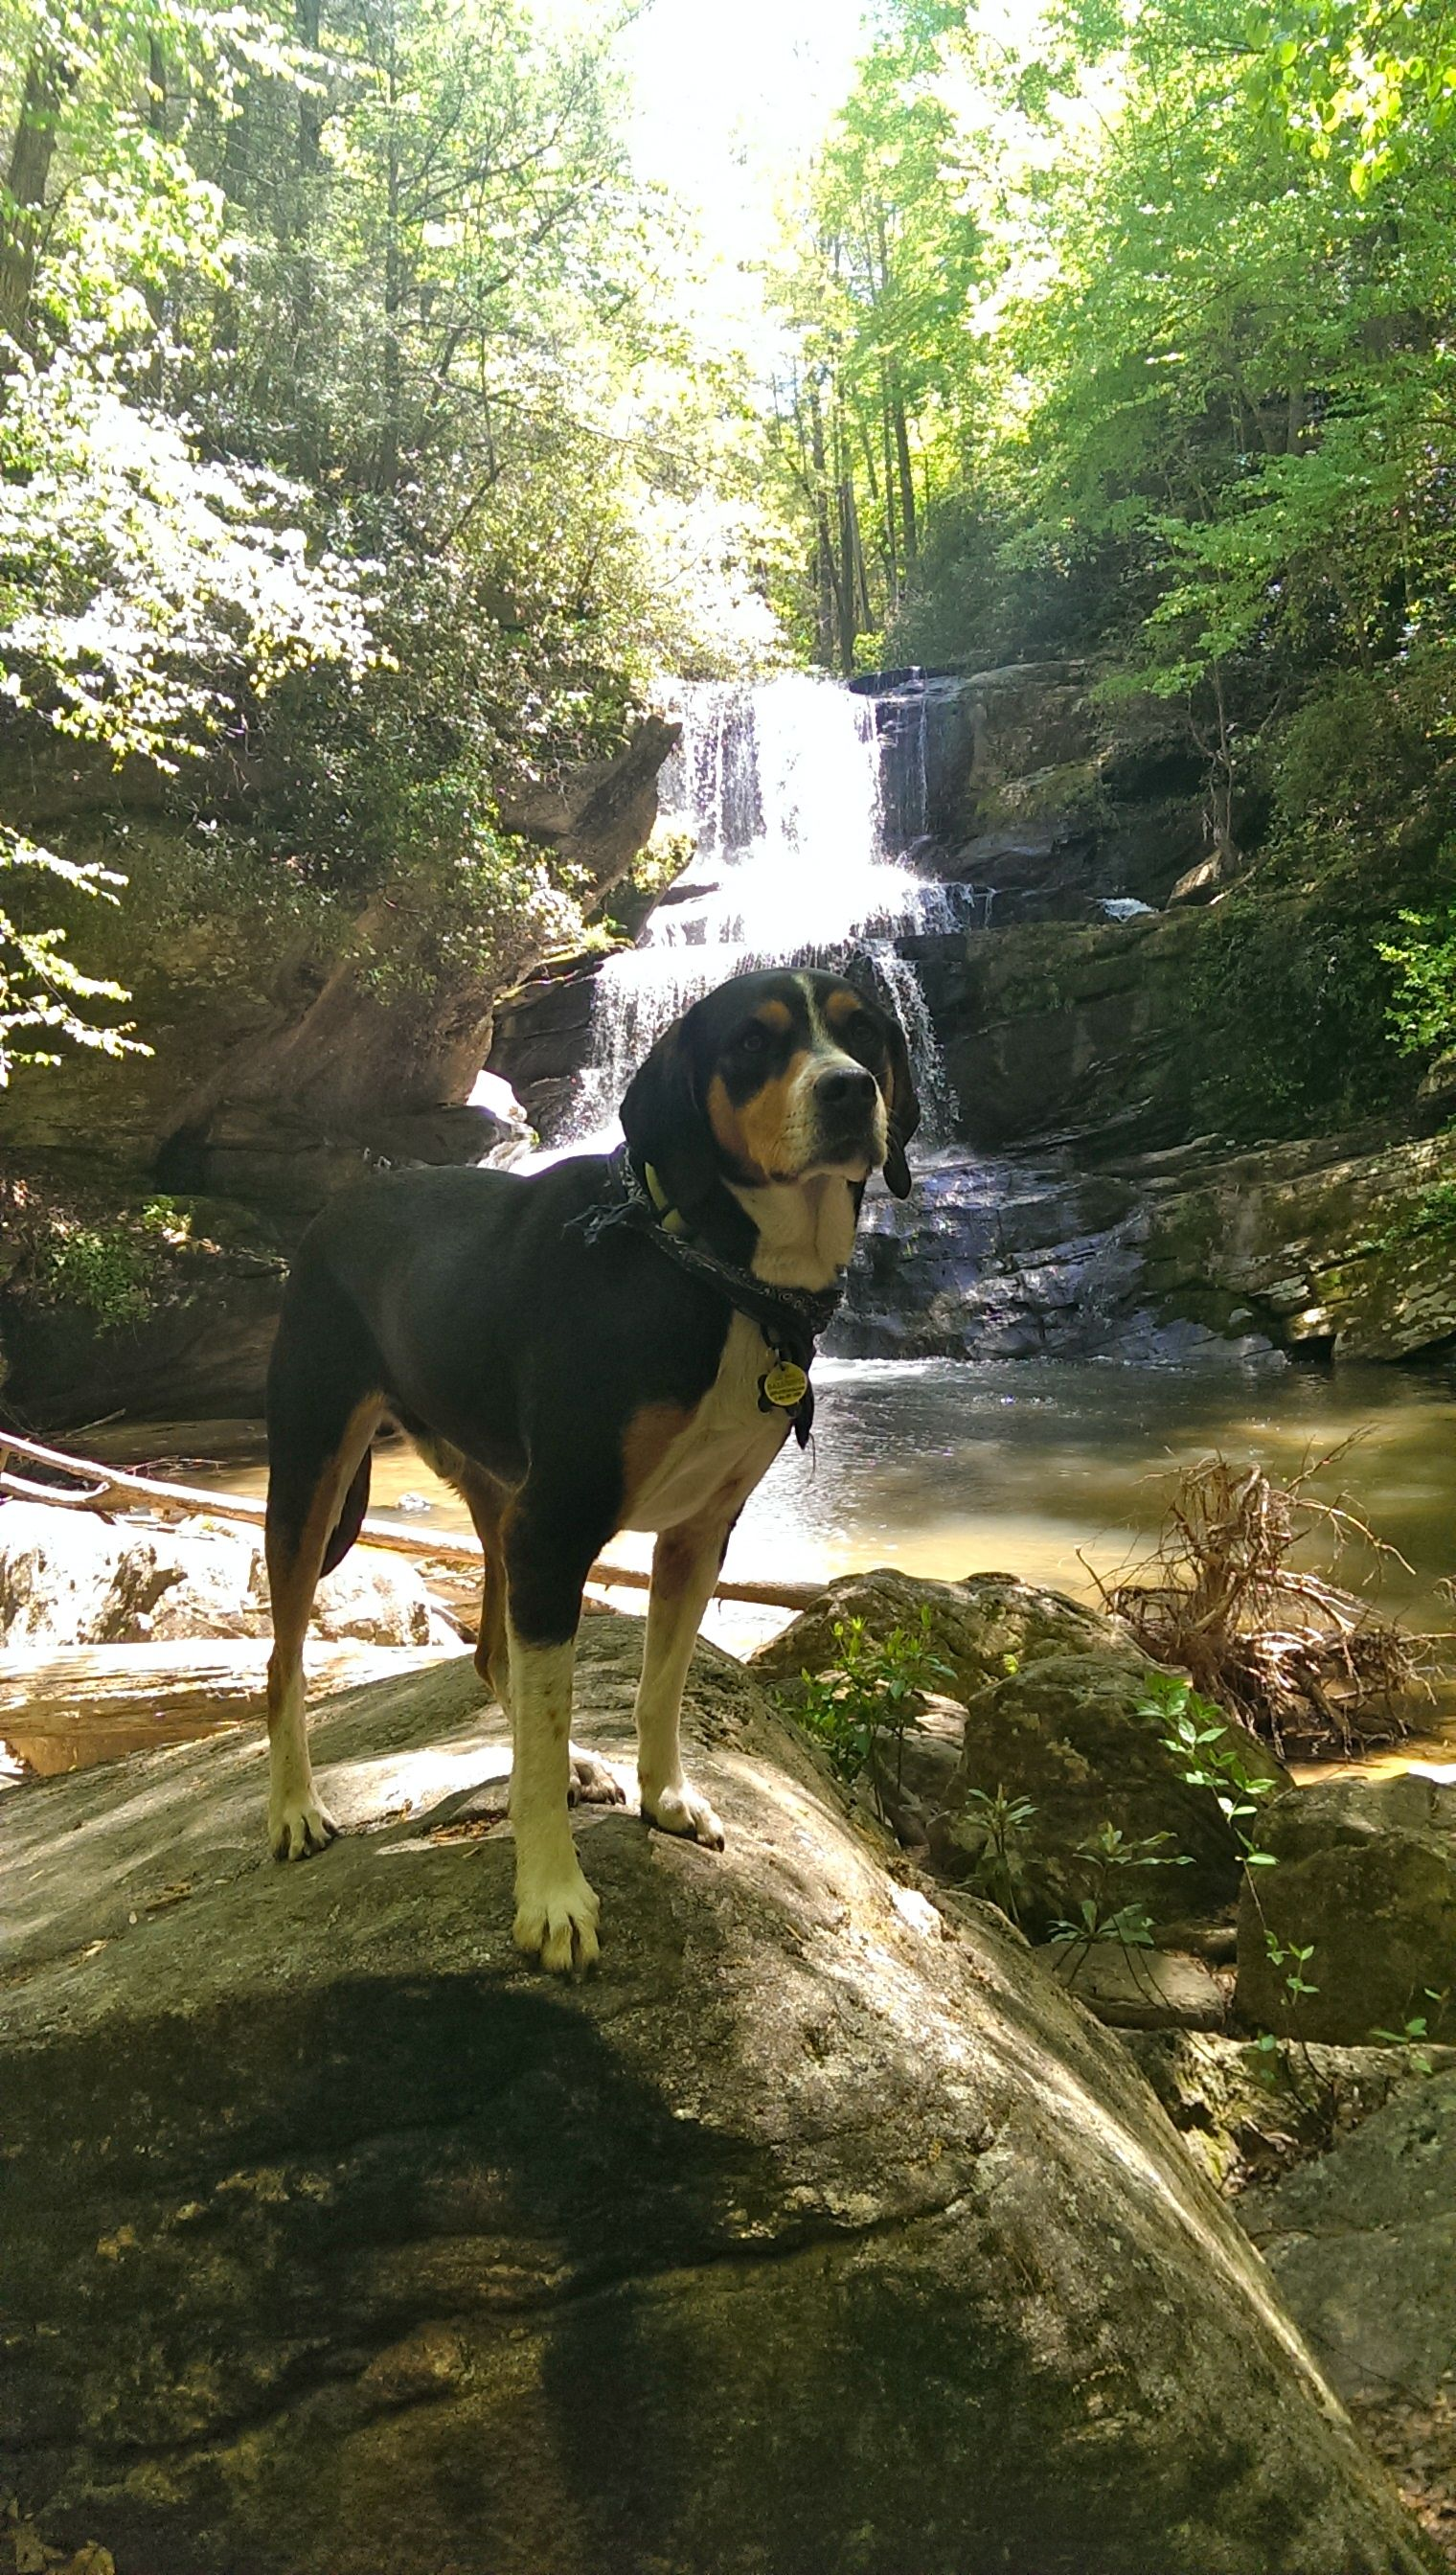 Wizard The One And Only Appenzeller Sennenhund Foxhound Mix Greater Swiss Mountain Dog Swiss Mountain Dogs The Fox And The Hound